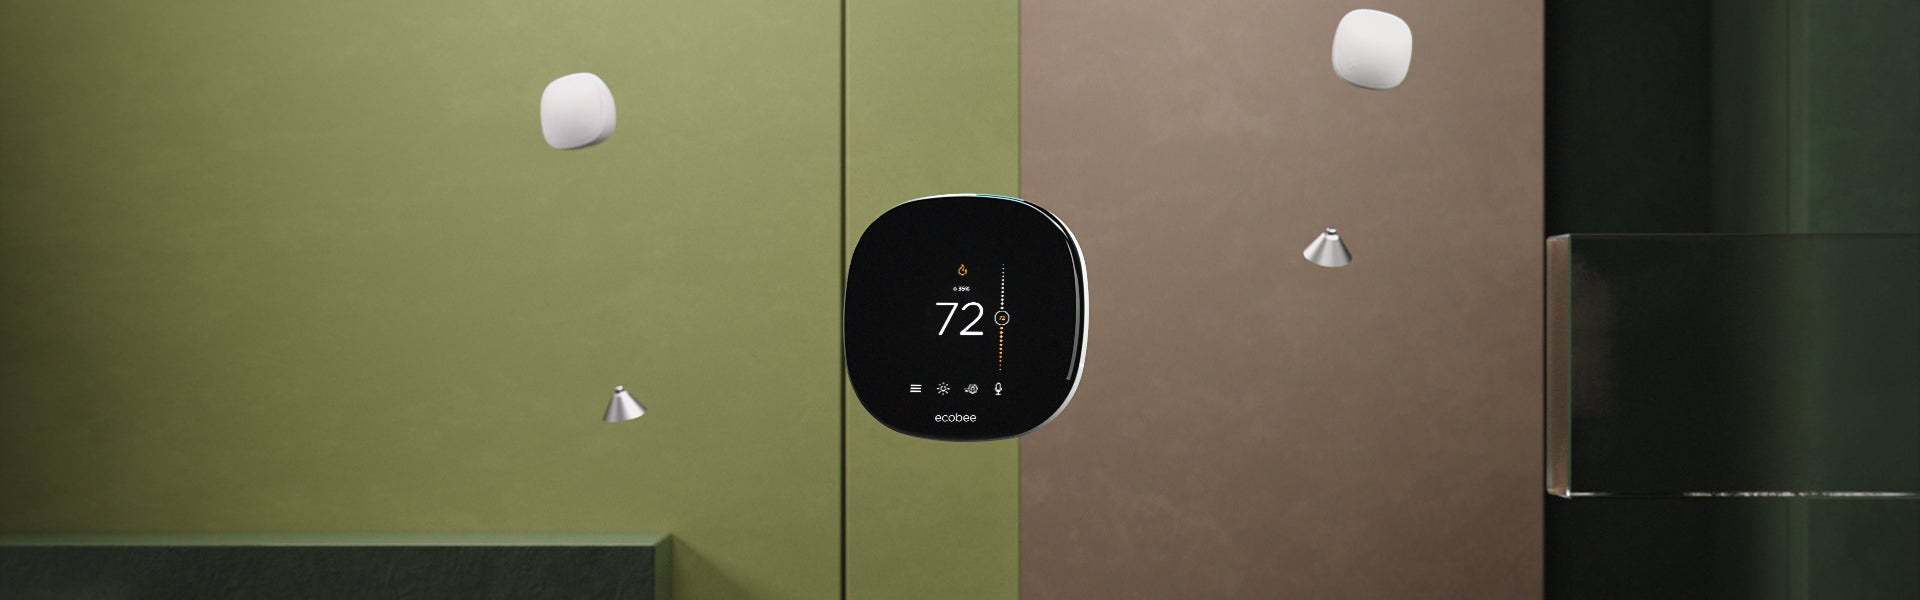 Ecobee Just Upgraded One Of Our Favorite Smart Thermostats